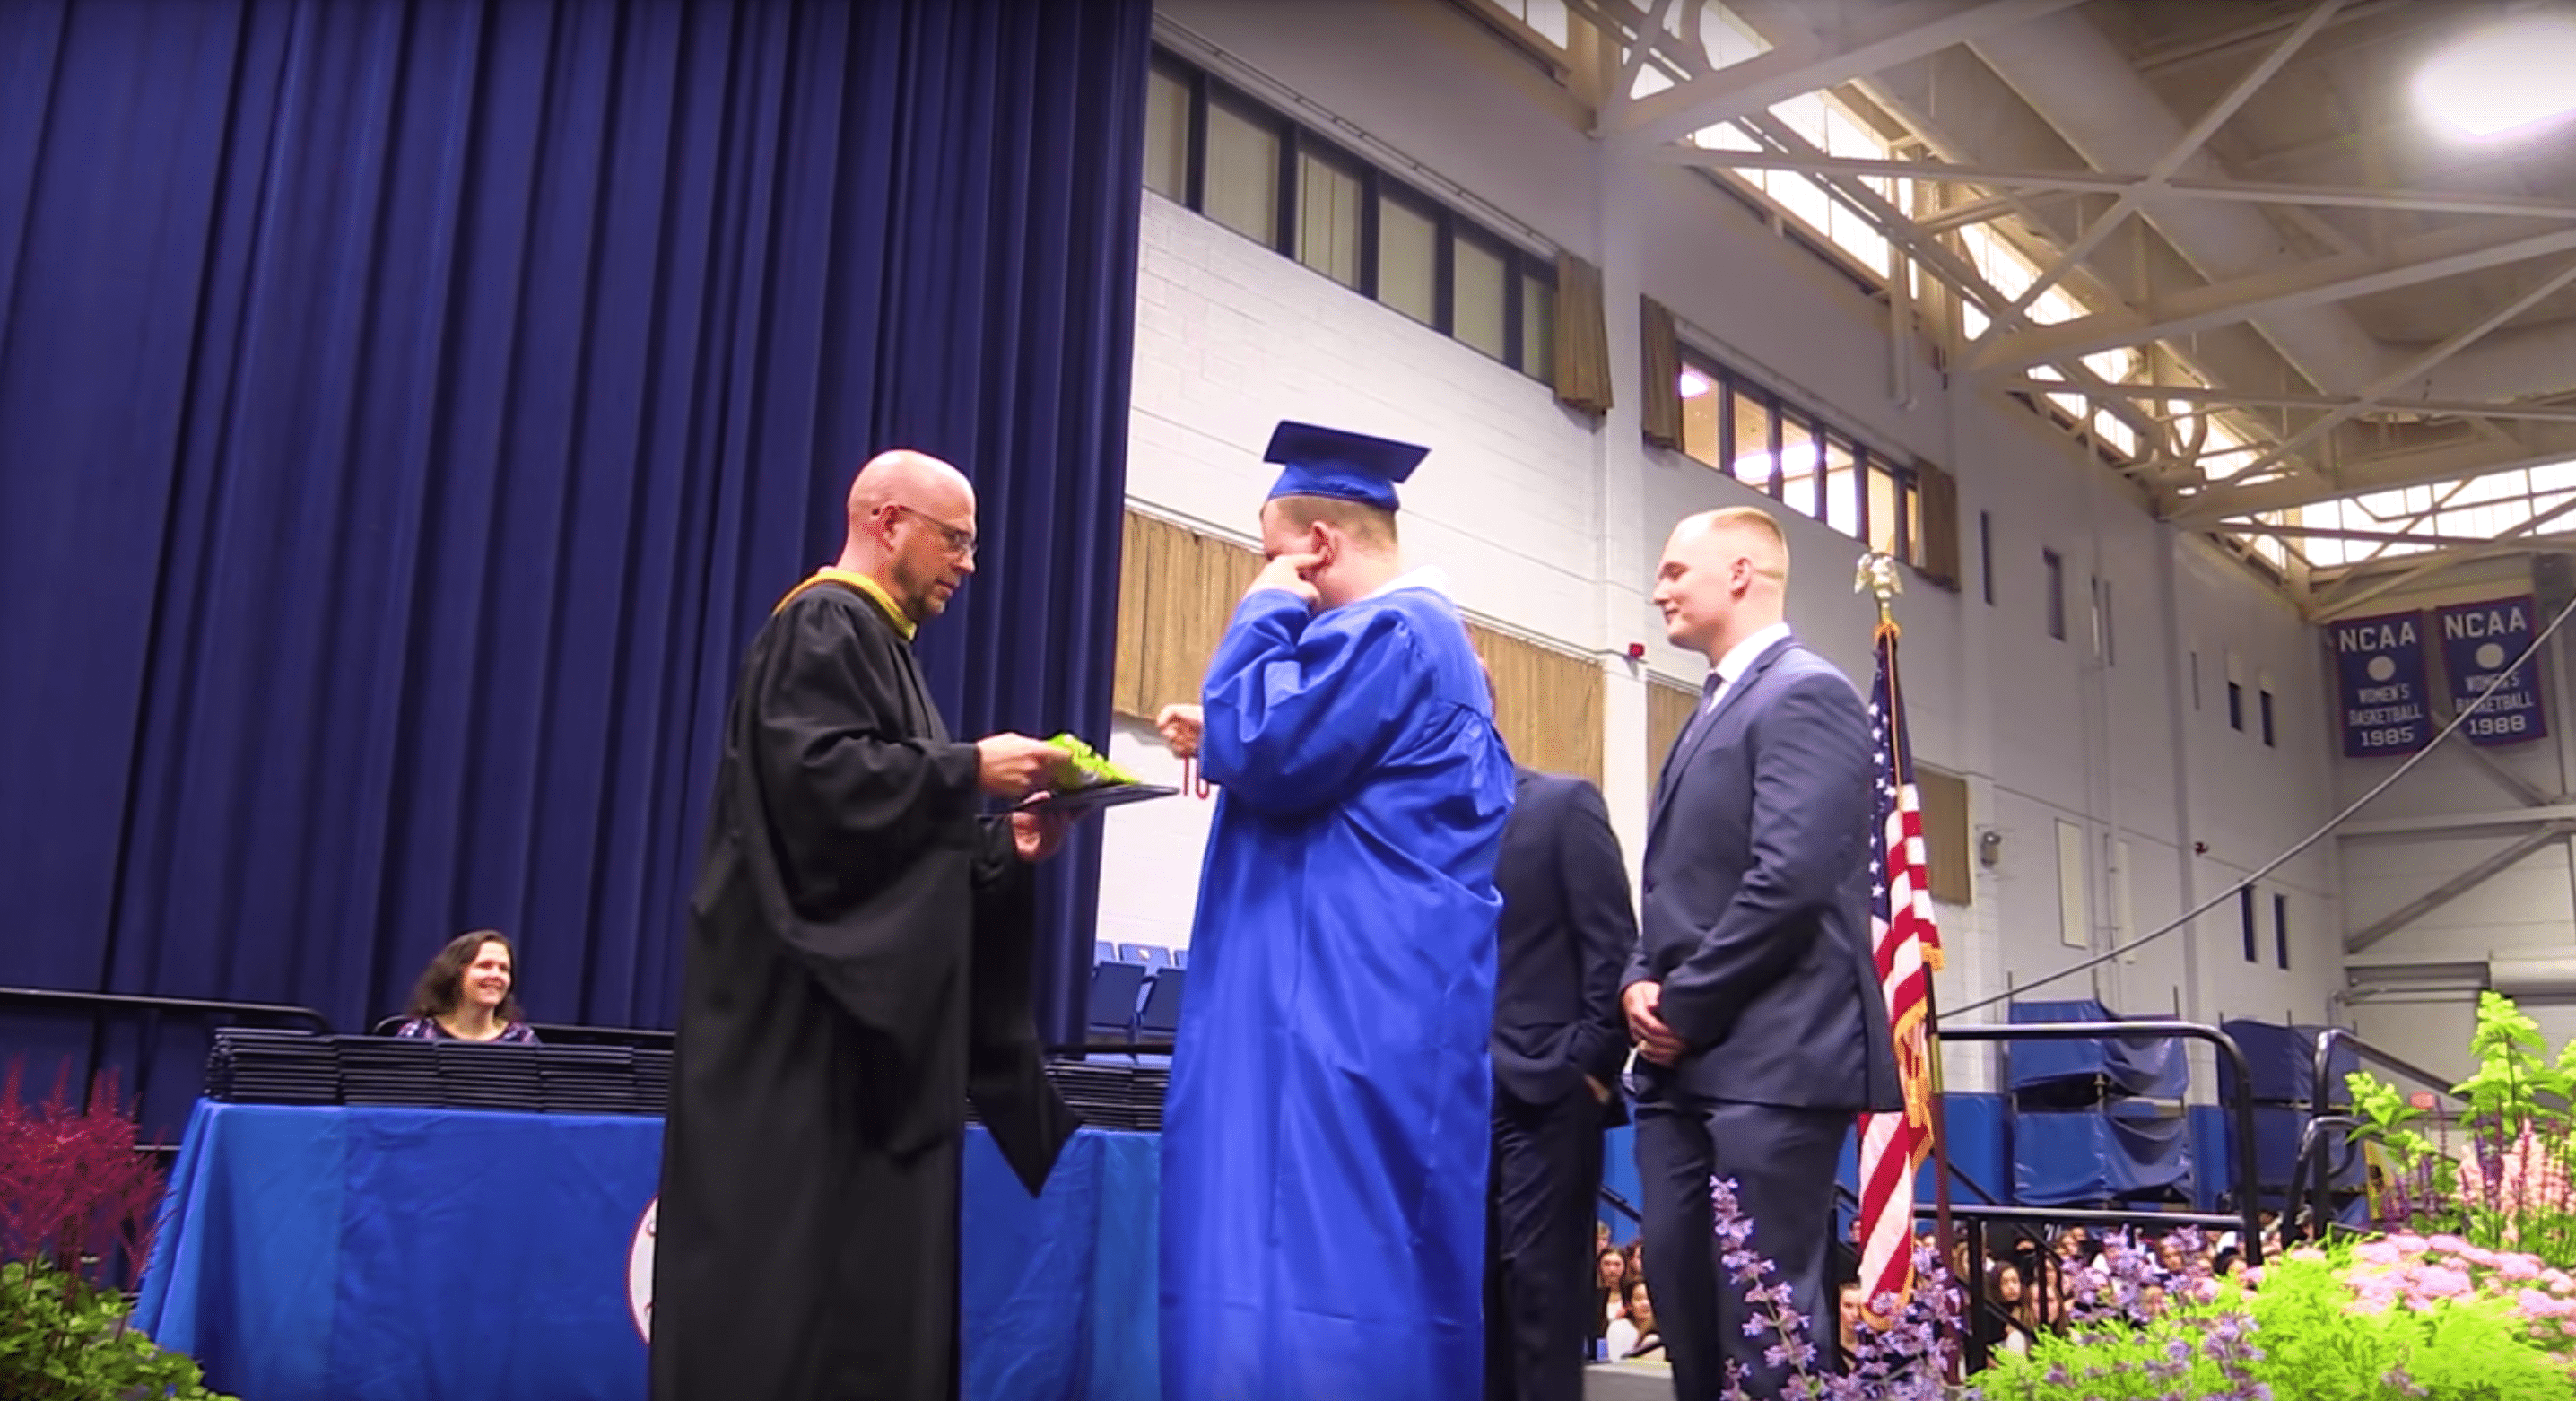 Jack Higgins receiving his certificate during the graduation ceremony. | Source: YouTube:  RaneyDayMedia